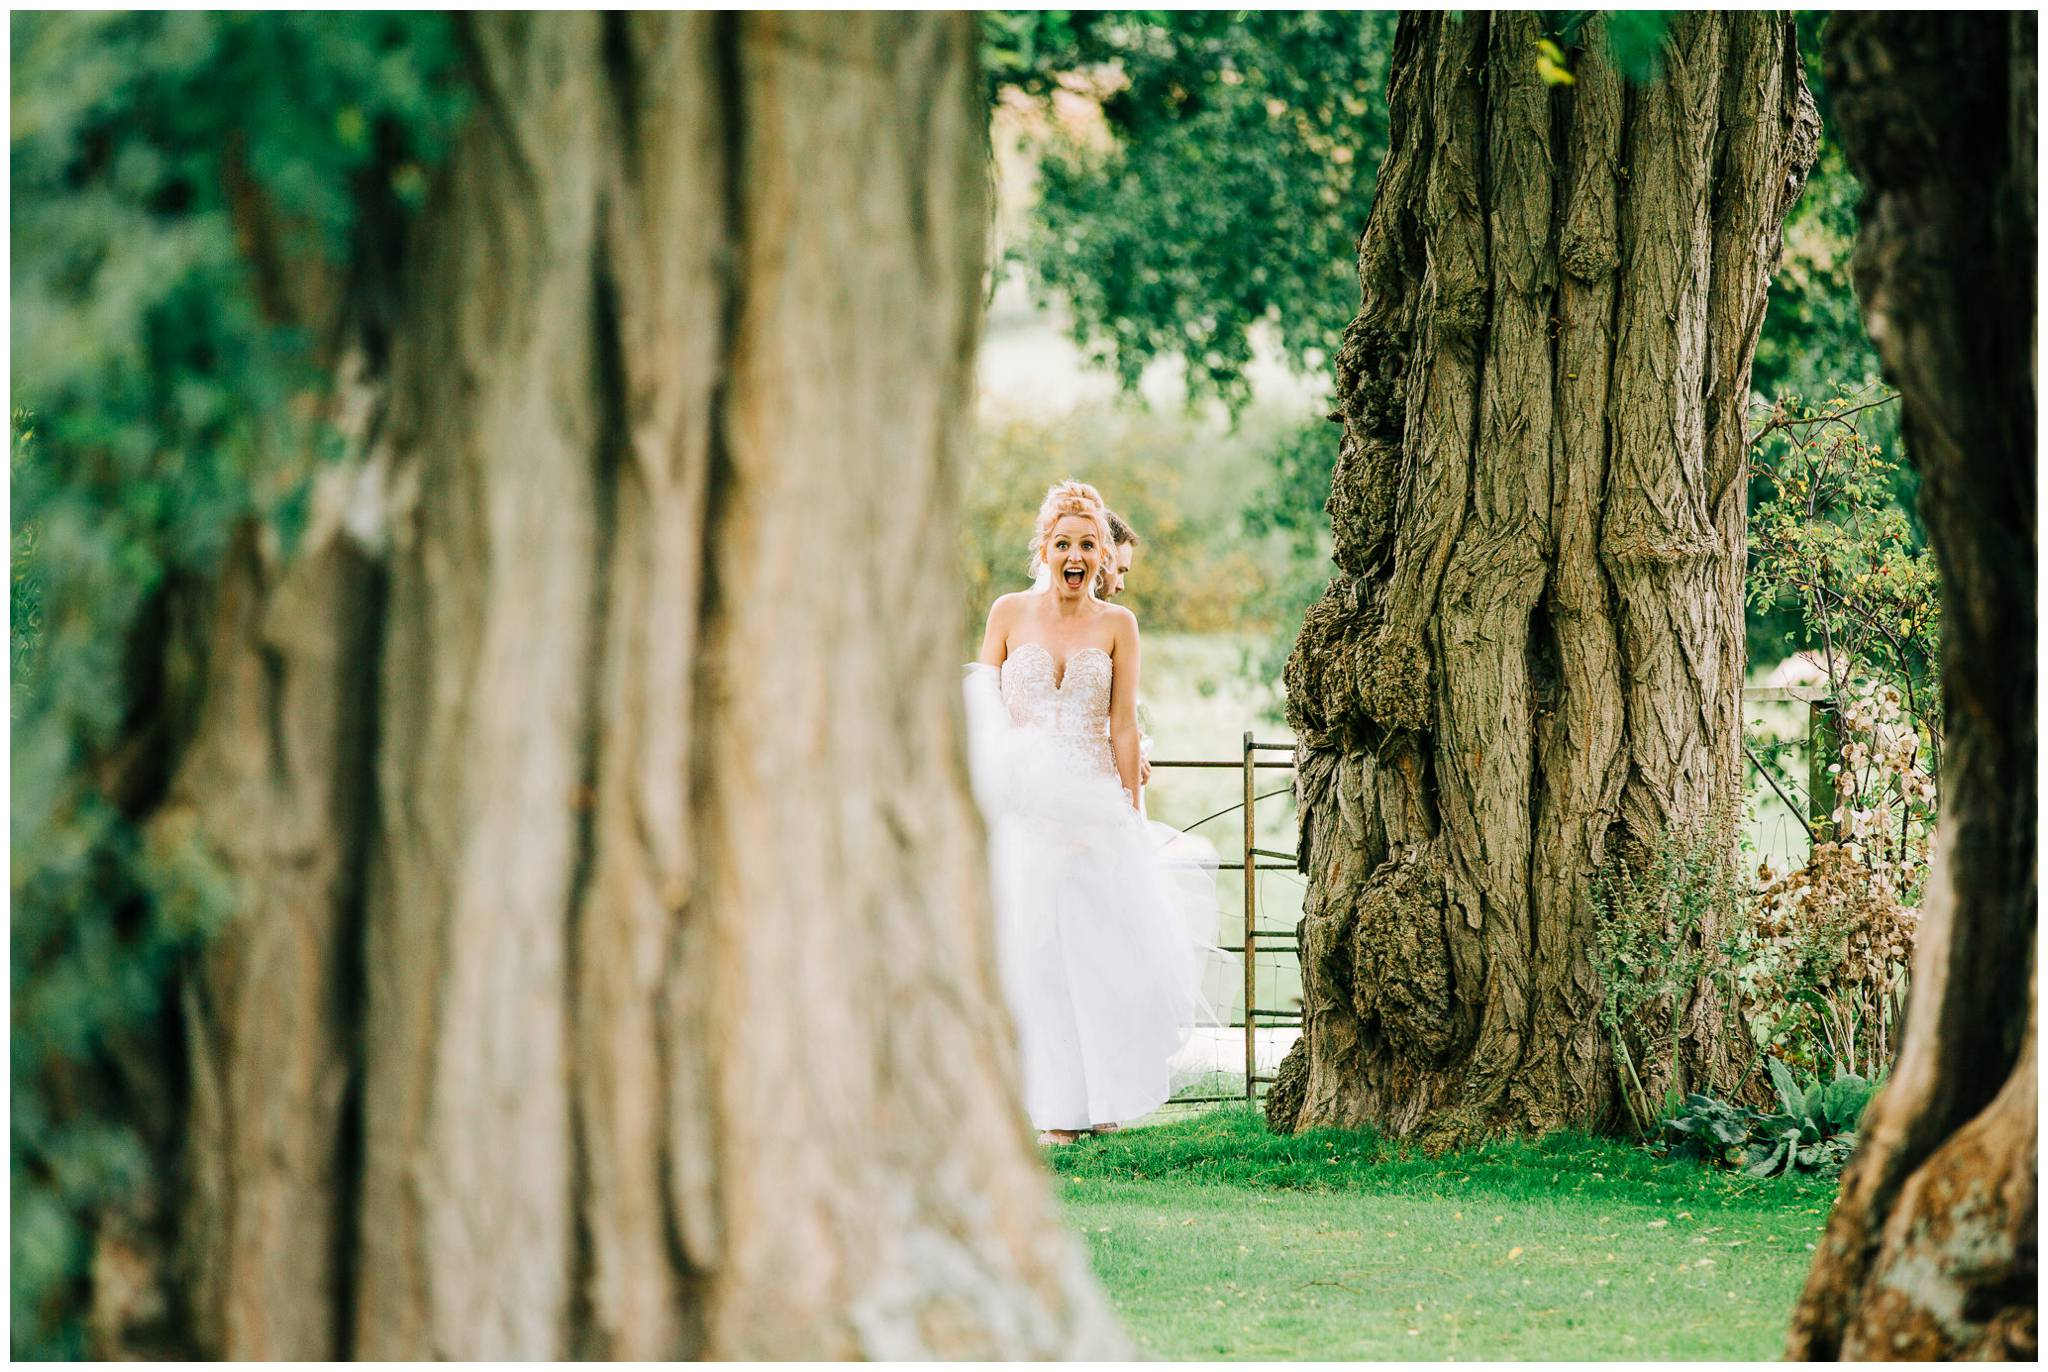 Natural wedding photography Manchester - Clare Robinson Photography_0290.jpg